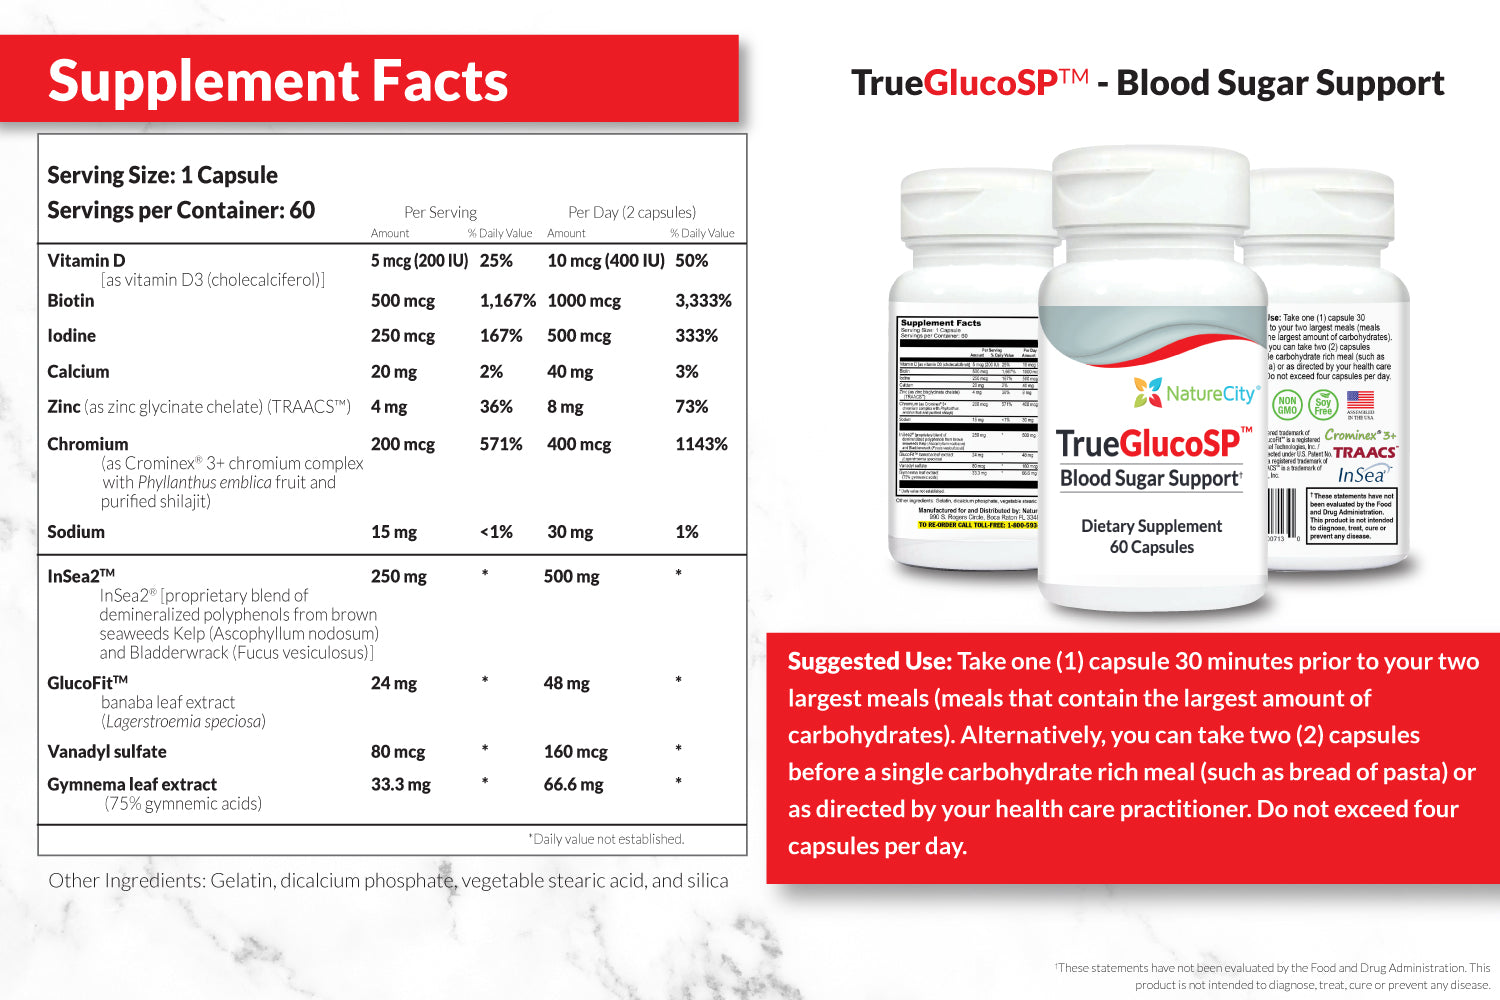 TrueGlucoSP Supplement Facts and Suggested Use